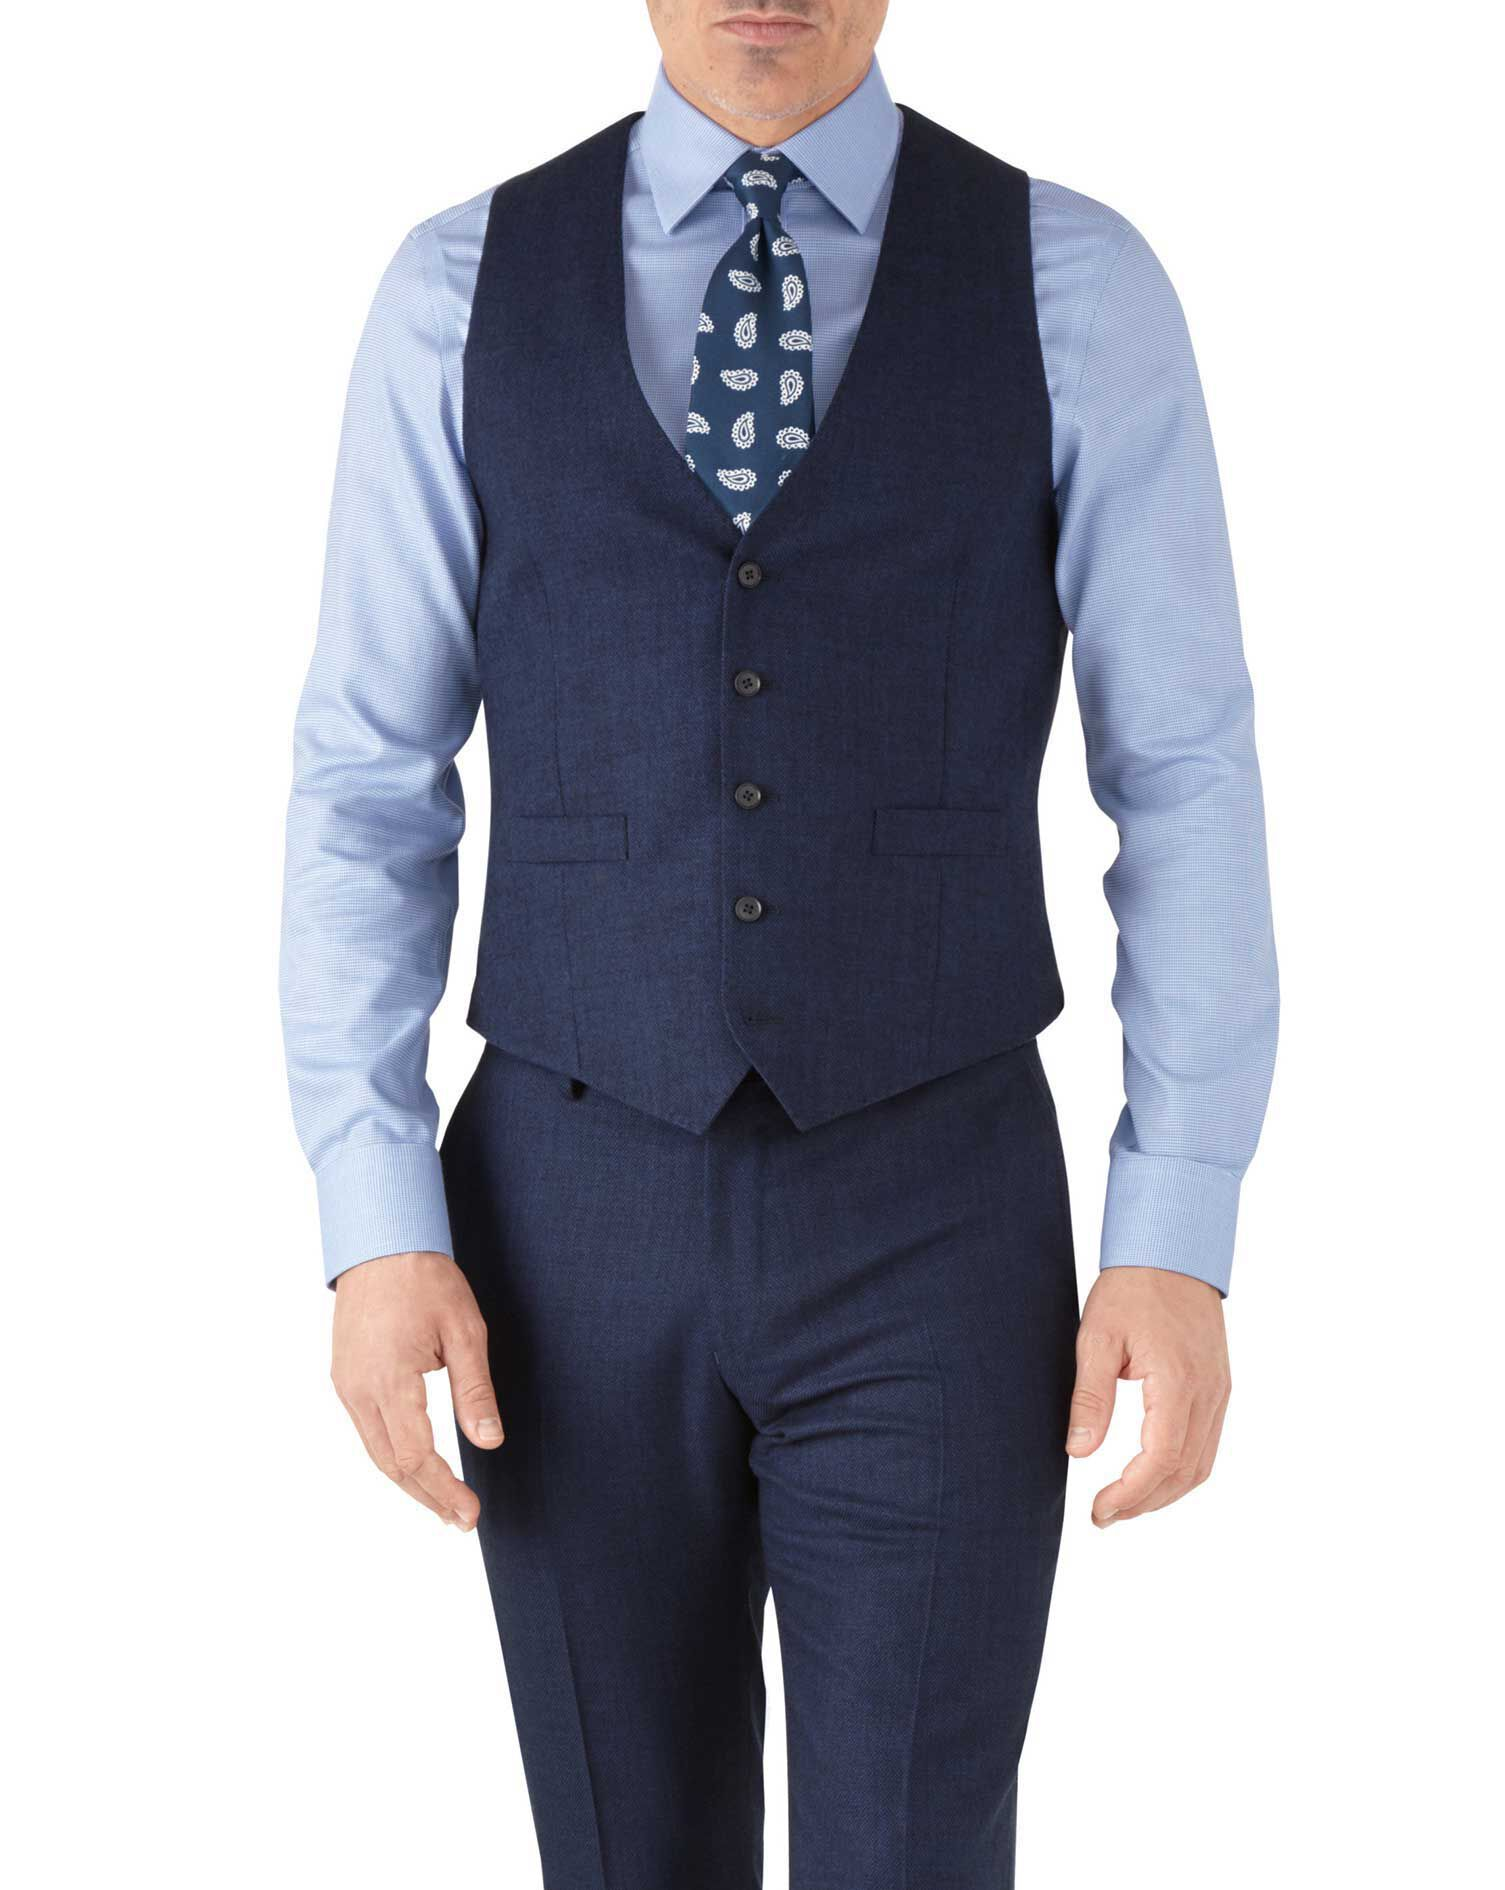 Royal Blue Adjustable Fit Flannel Business Suit Wool Waistcoat Size w42 by Charles Tyrwhitt